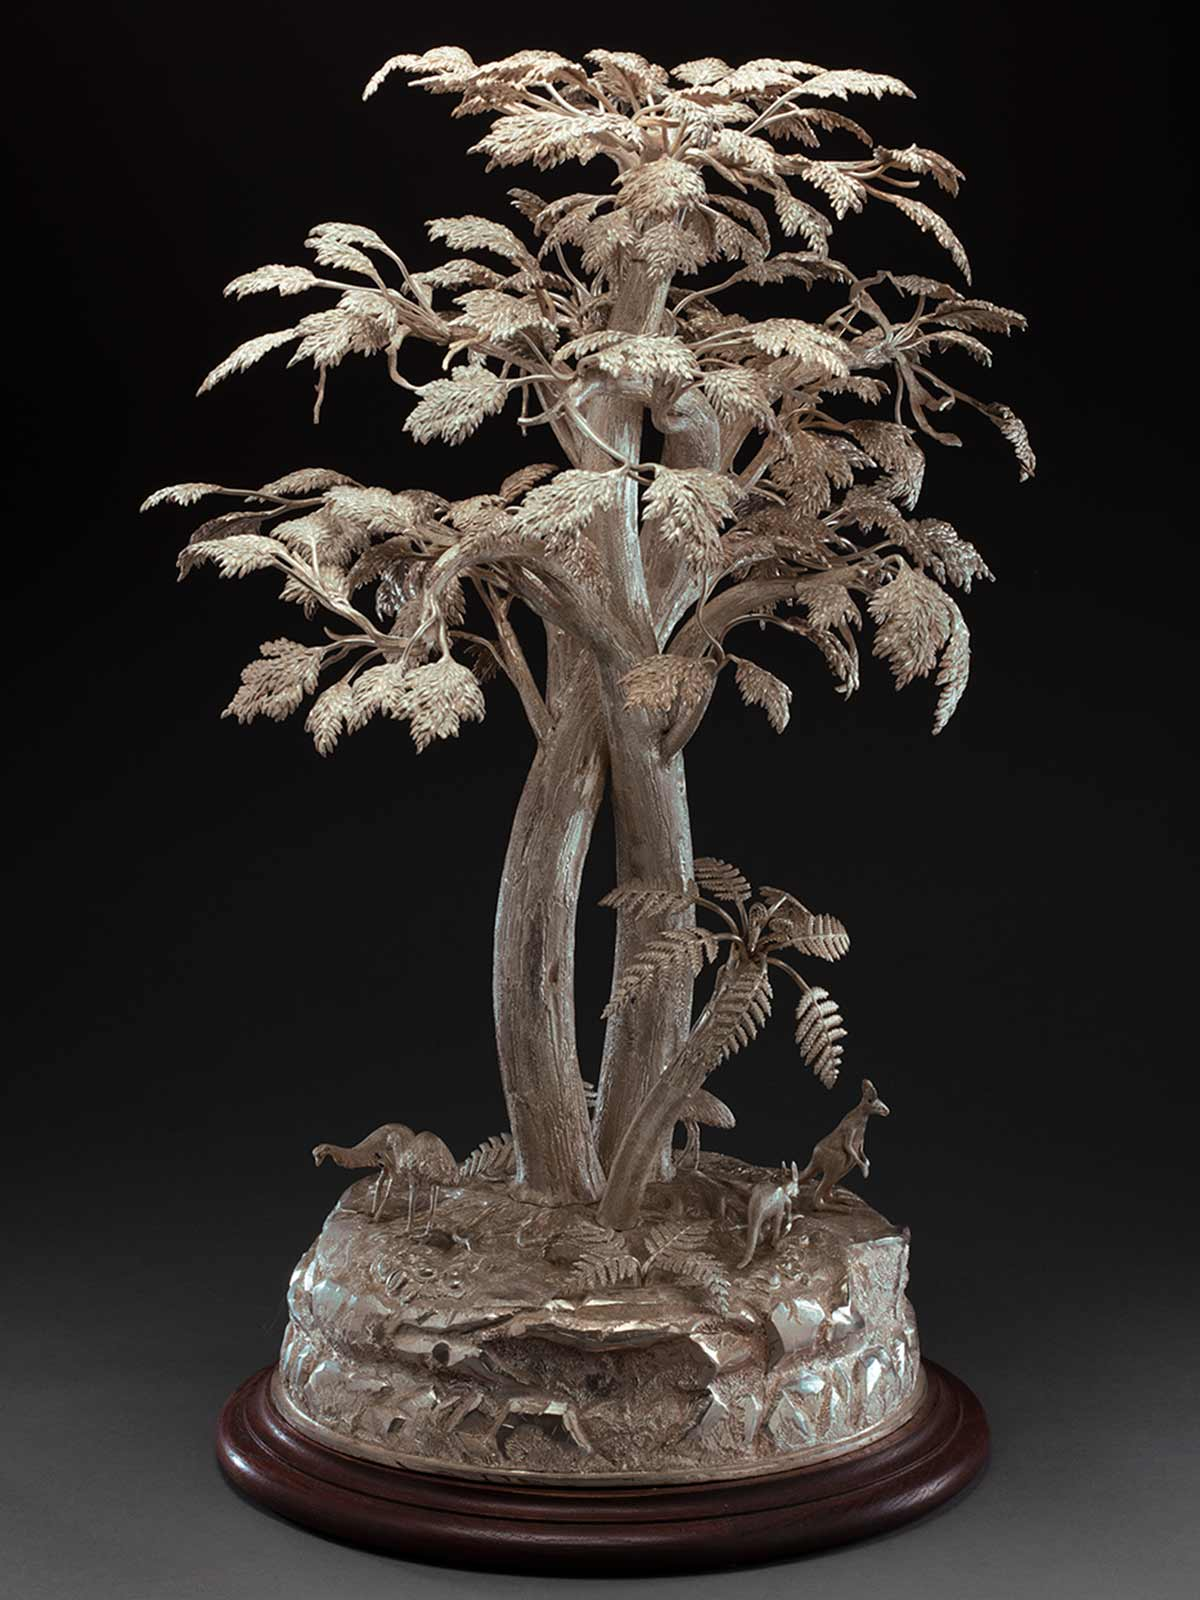 Silver tree with small silver kangaroos and emus on a round base. - click to view larger image